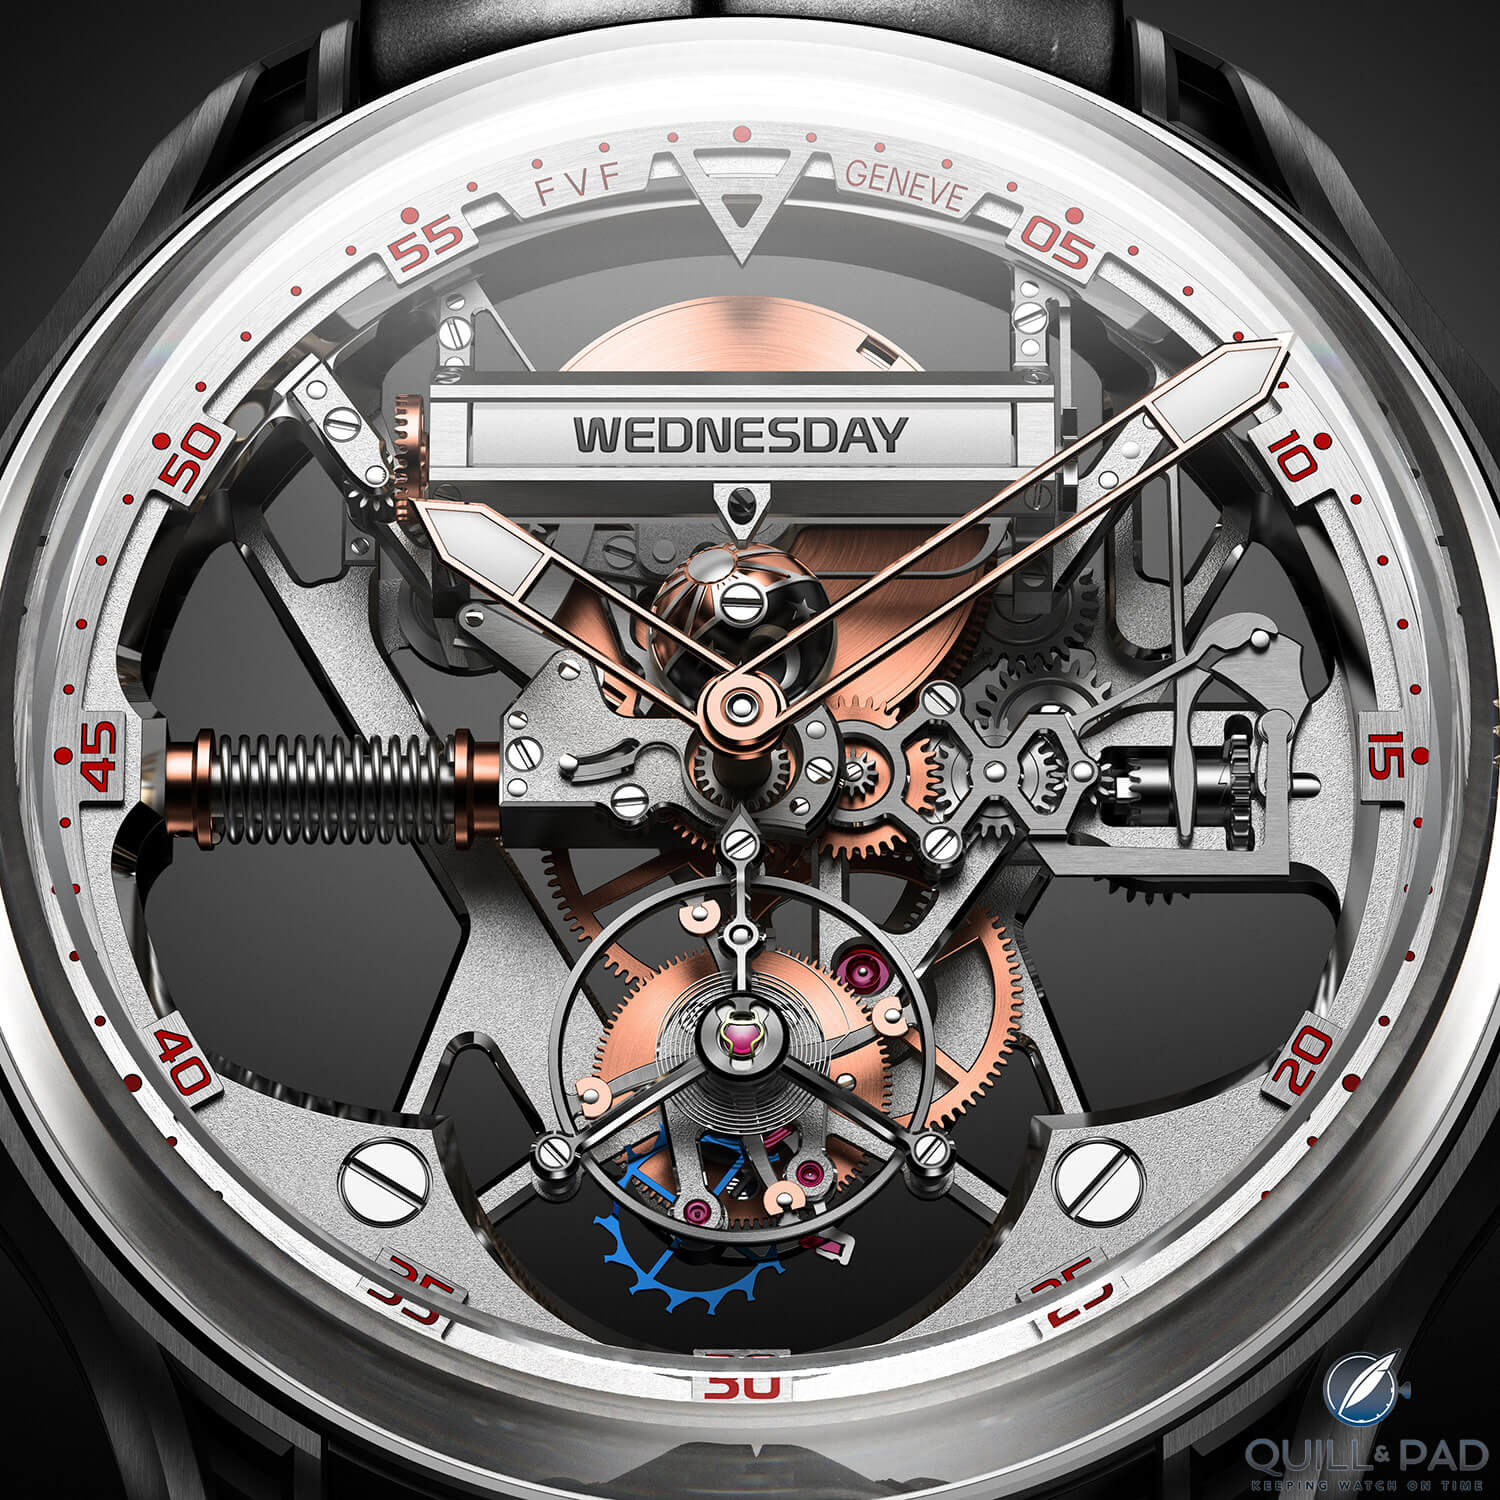 Close up look dial side of the Profile view of the Franc Vila FVF Emotional Horology No 1 Superligero